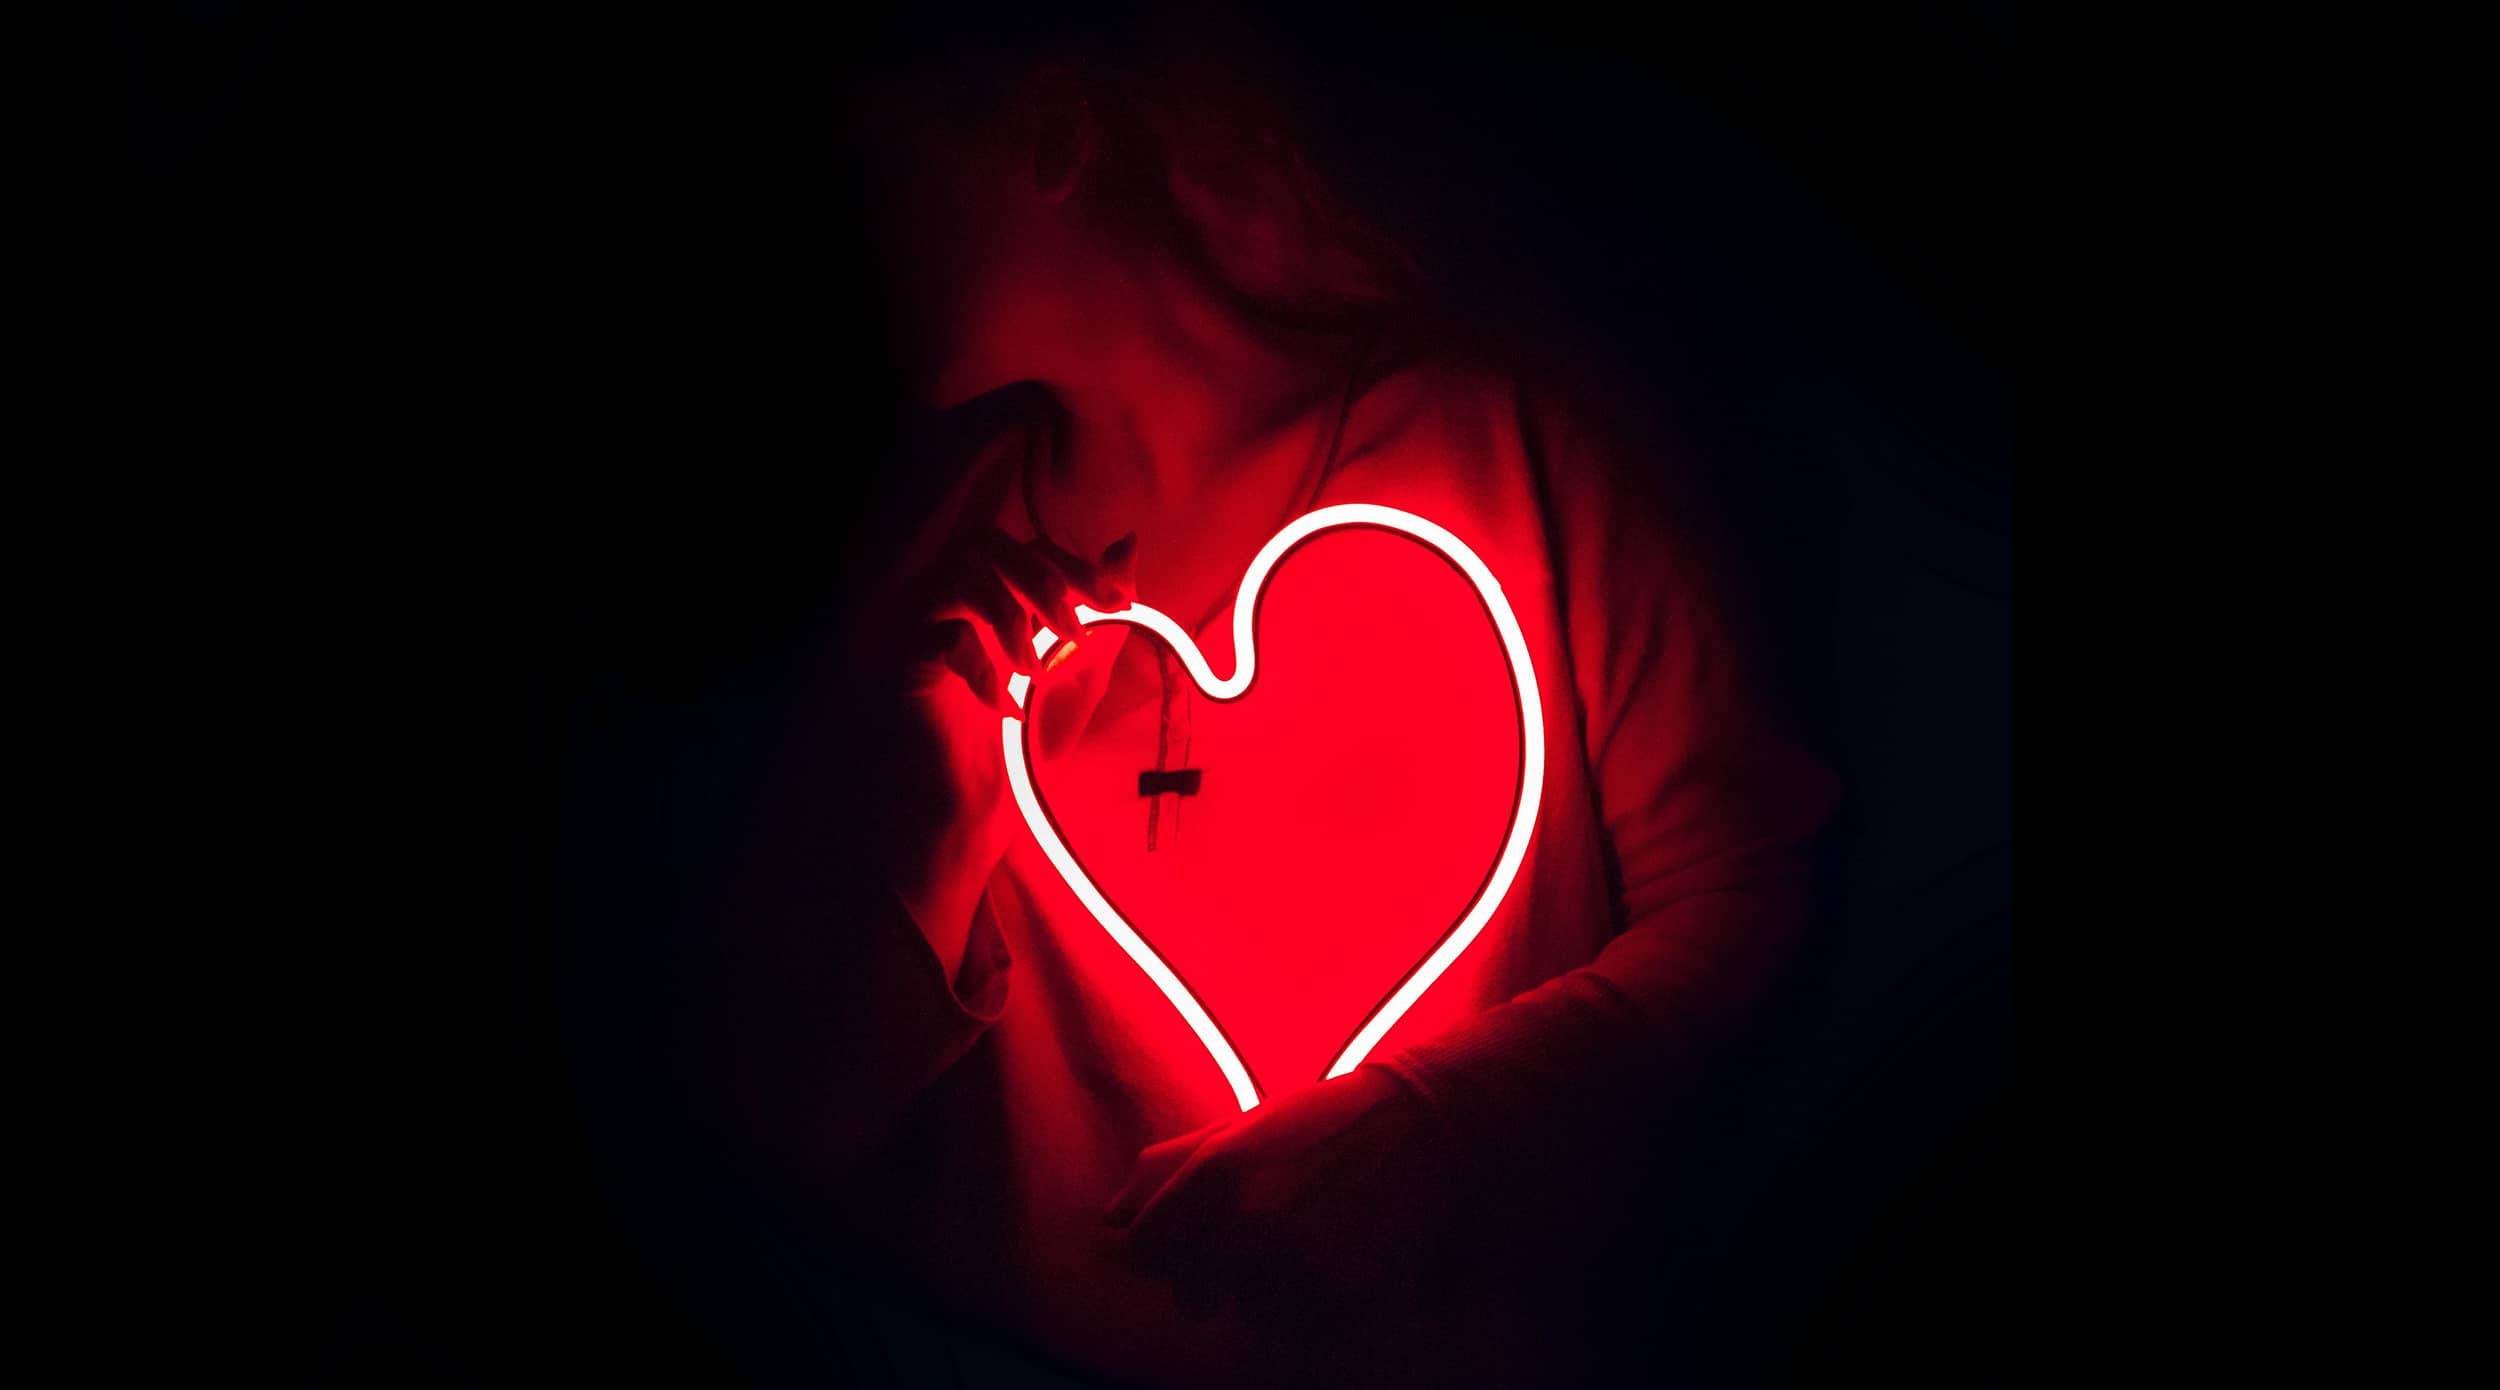 A glowing heart representing how positive social emotional learning can inspire change